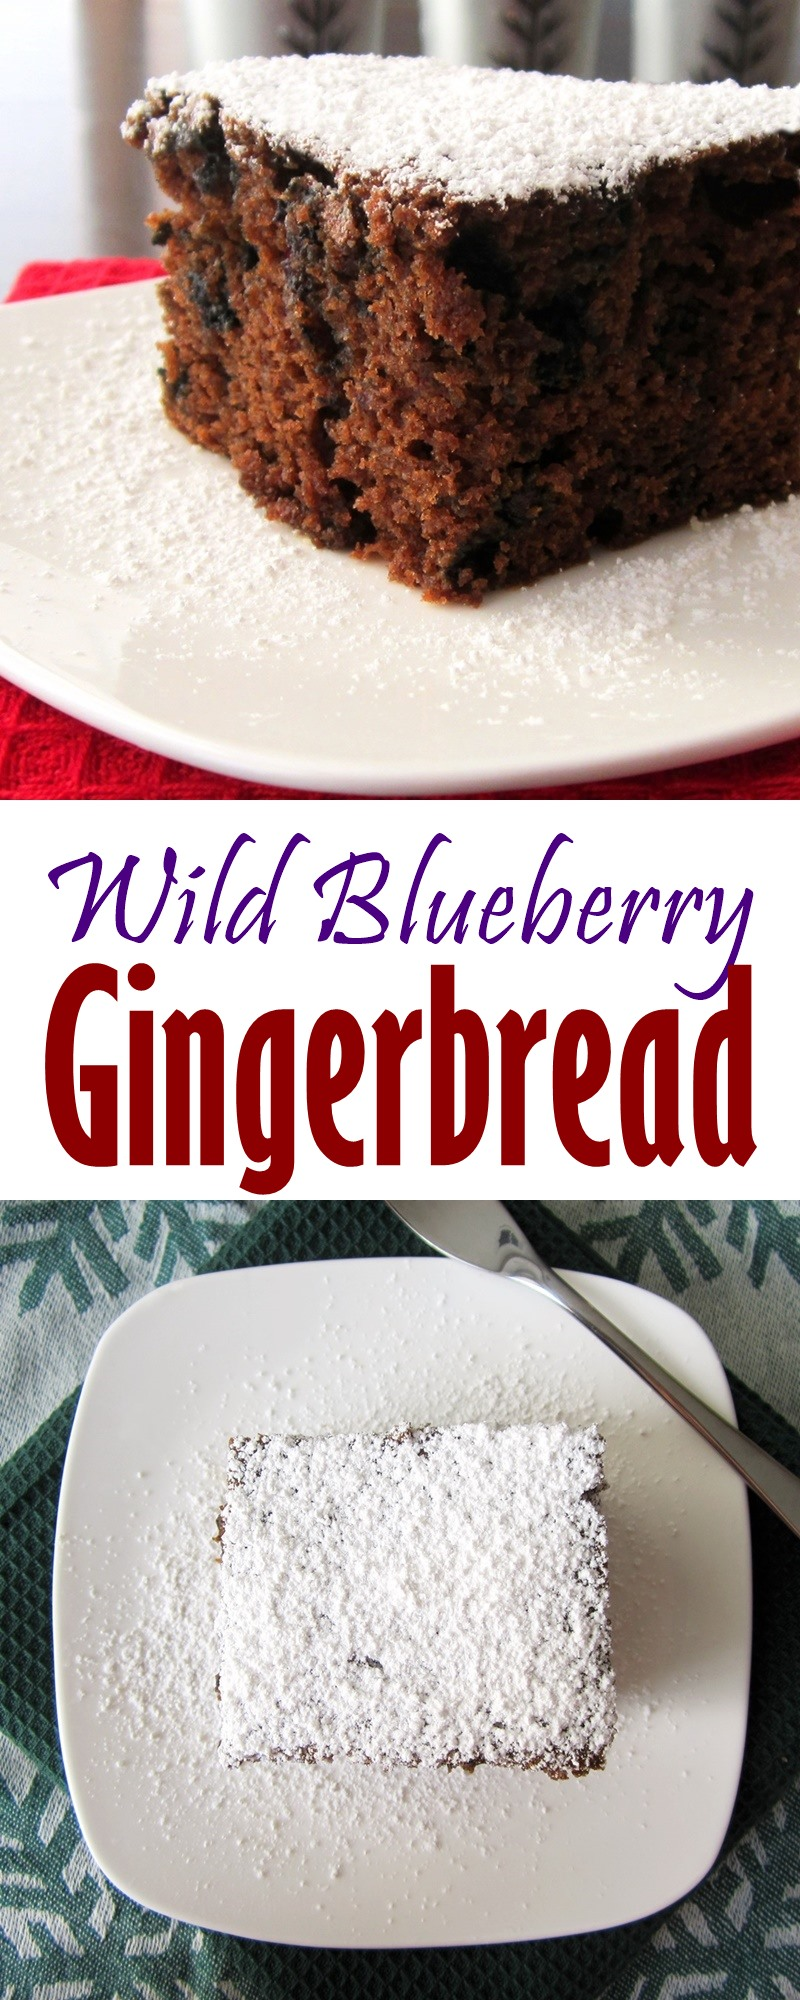 Wild Blueberry Gingerbread Recipe (dairy-free)